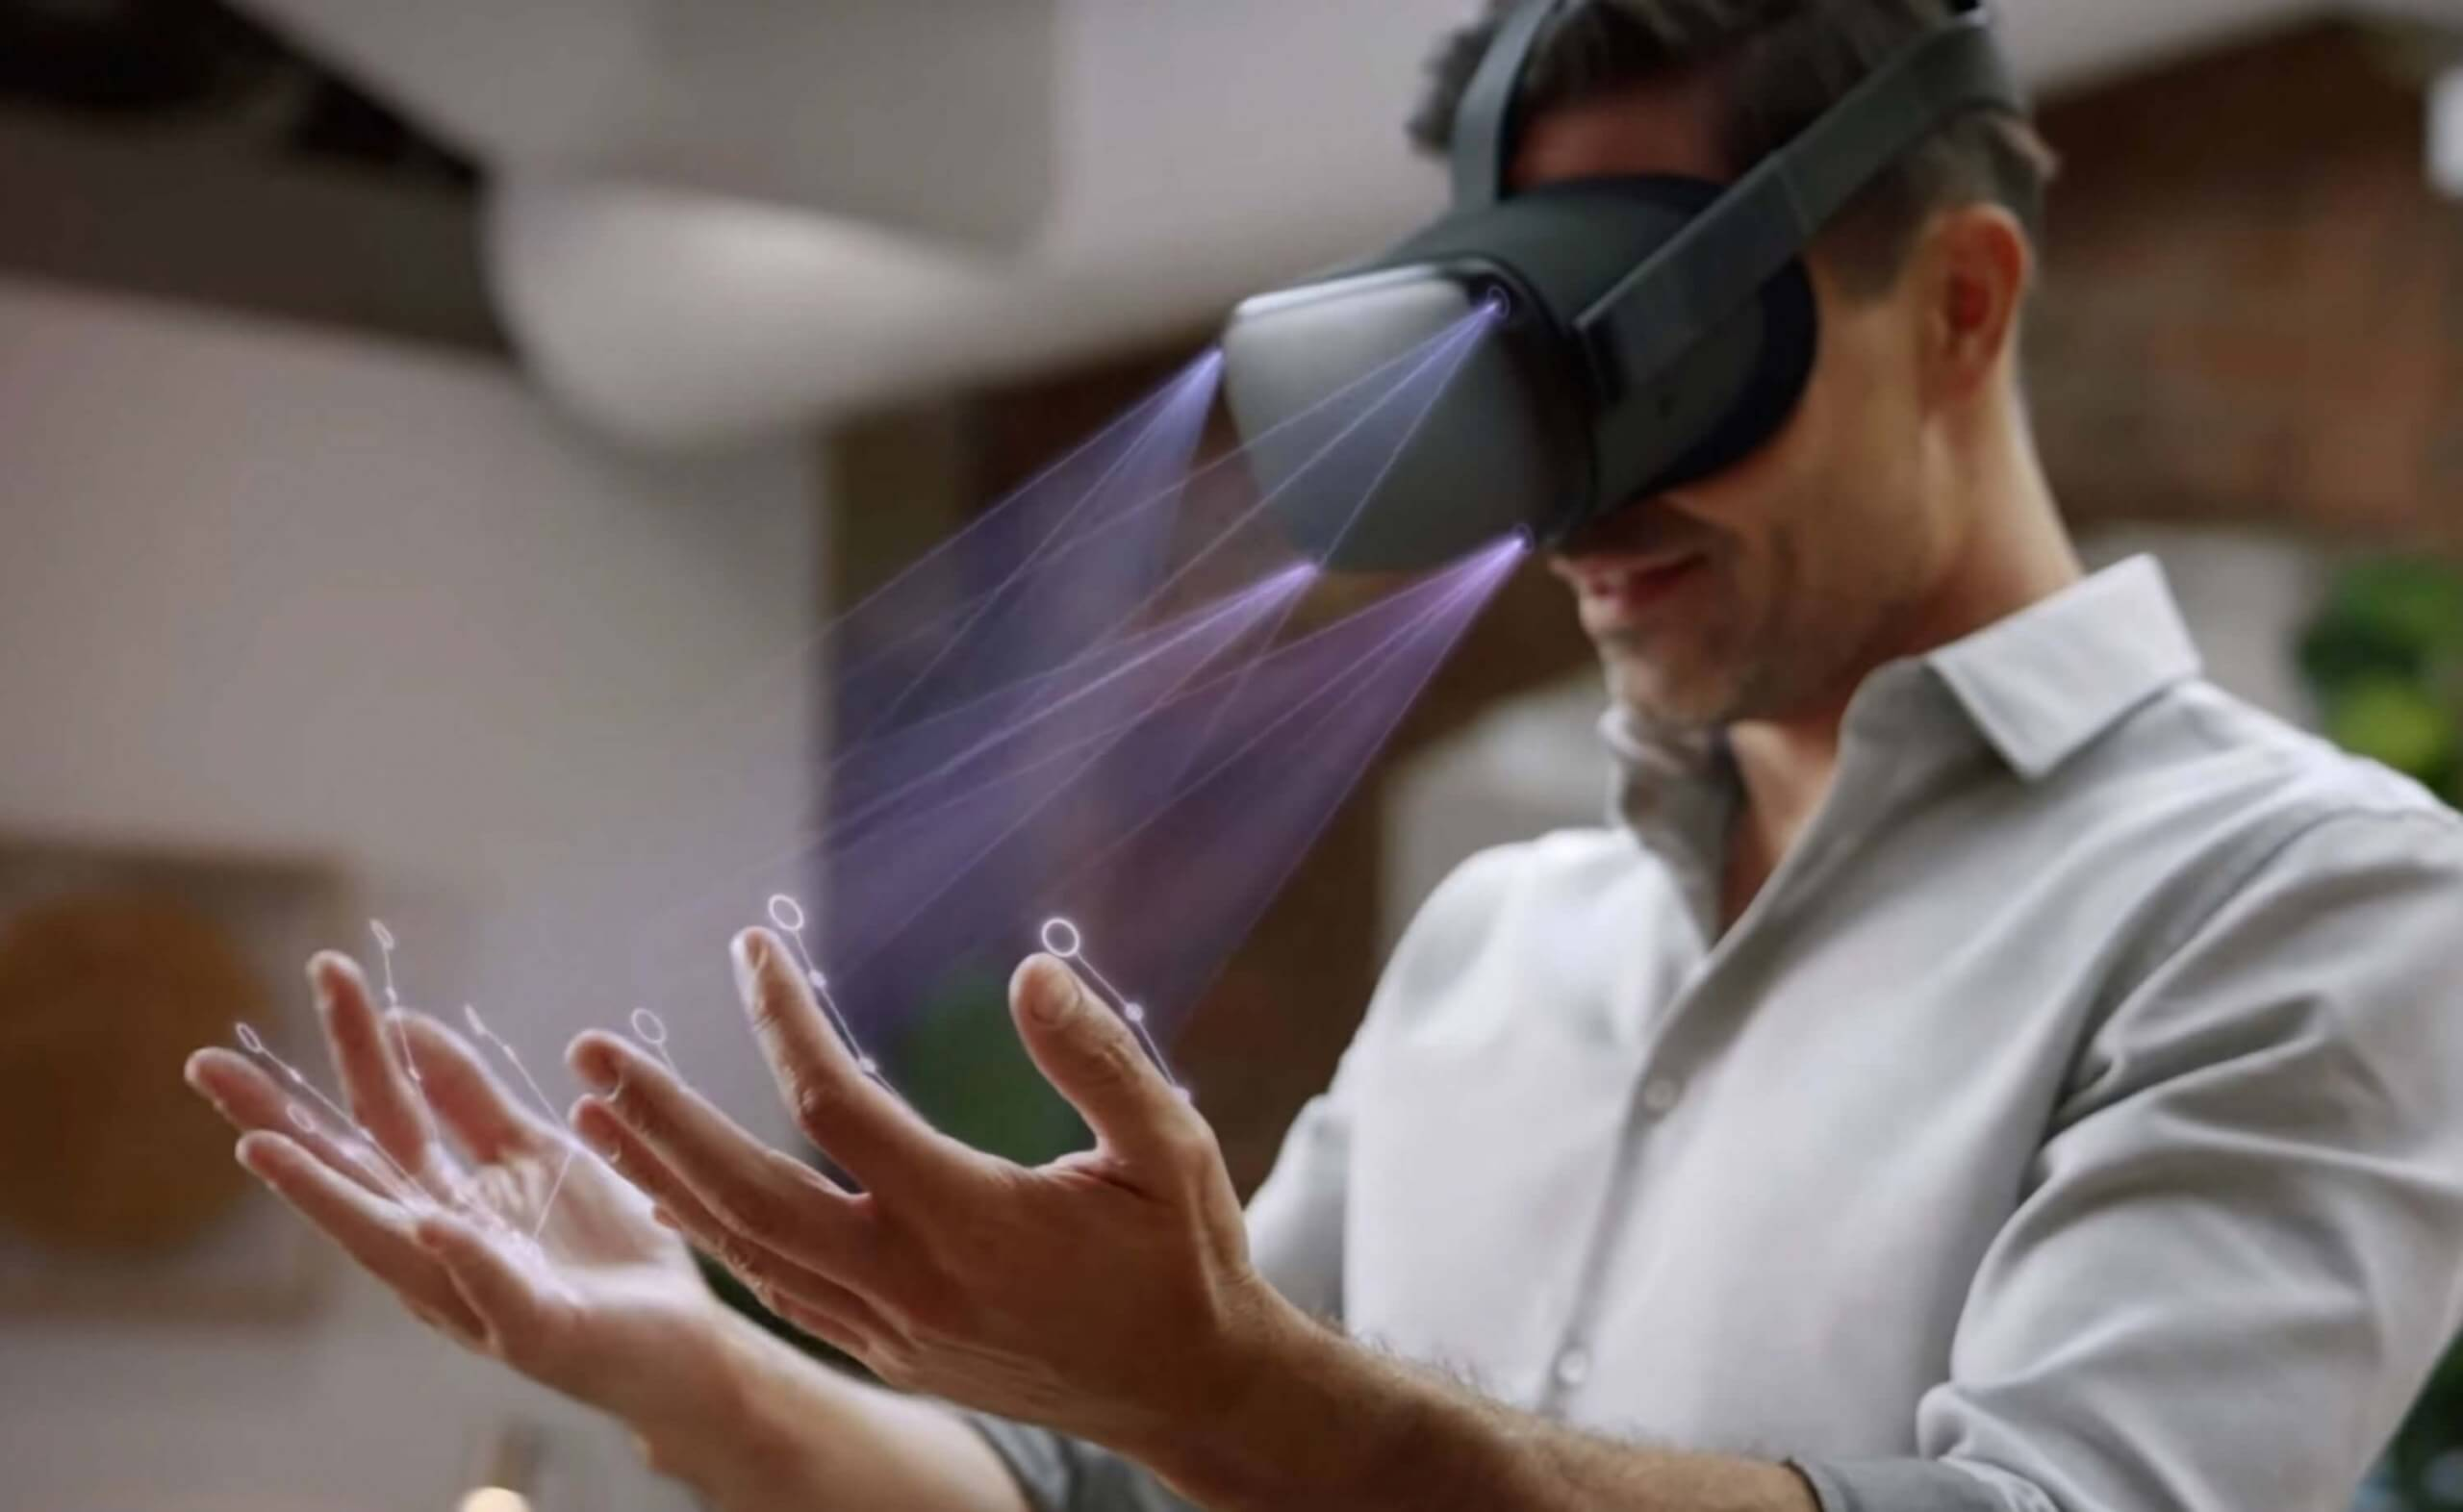 Oculus Quest hand-tracking support release date announced